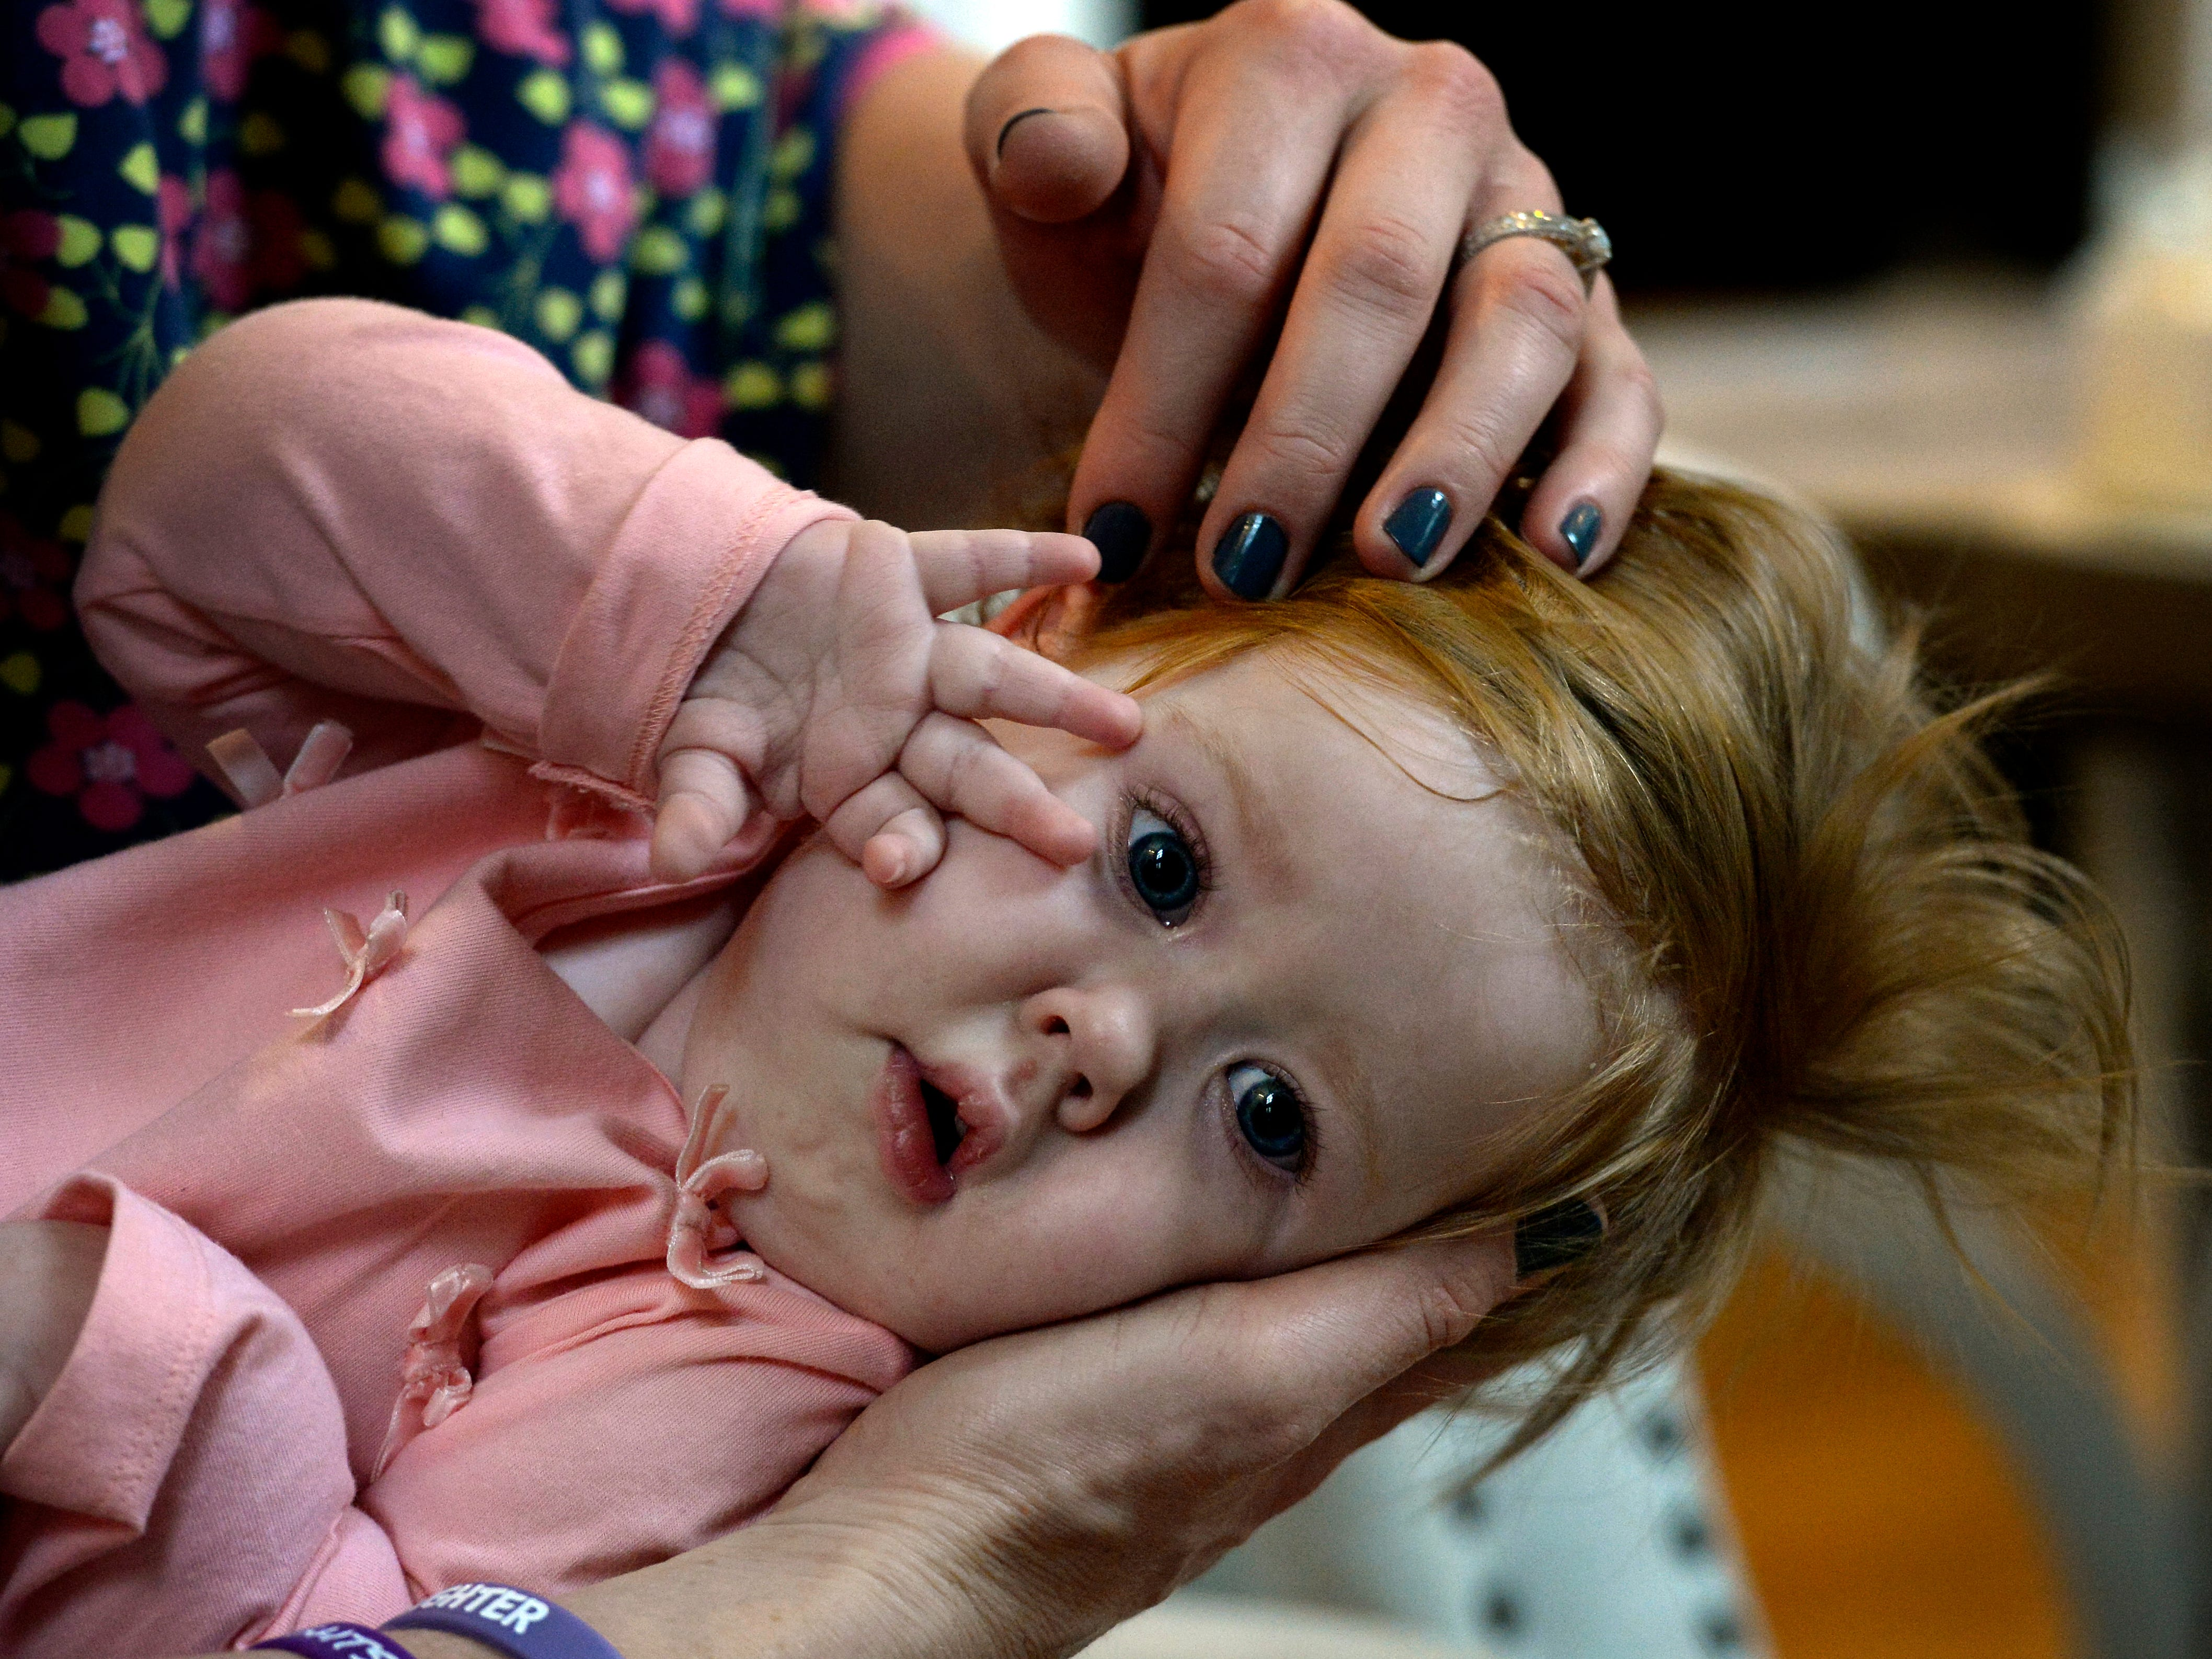 Caring for children with severe disabilities financially devastates Tennessee families